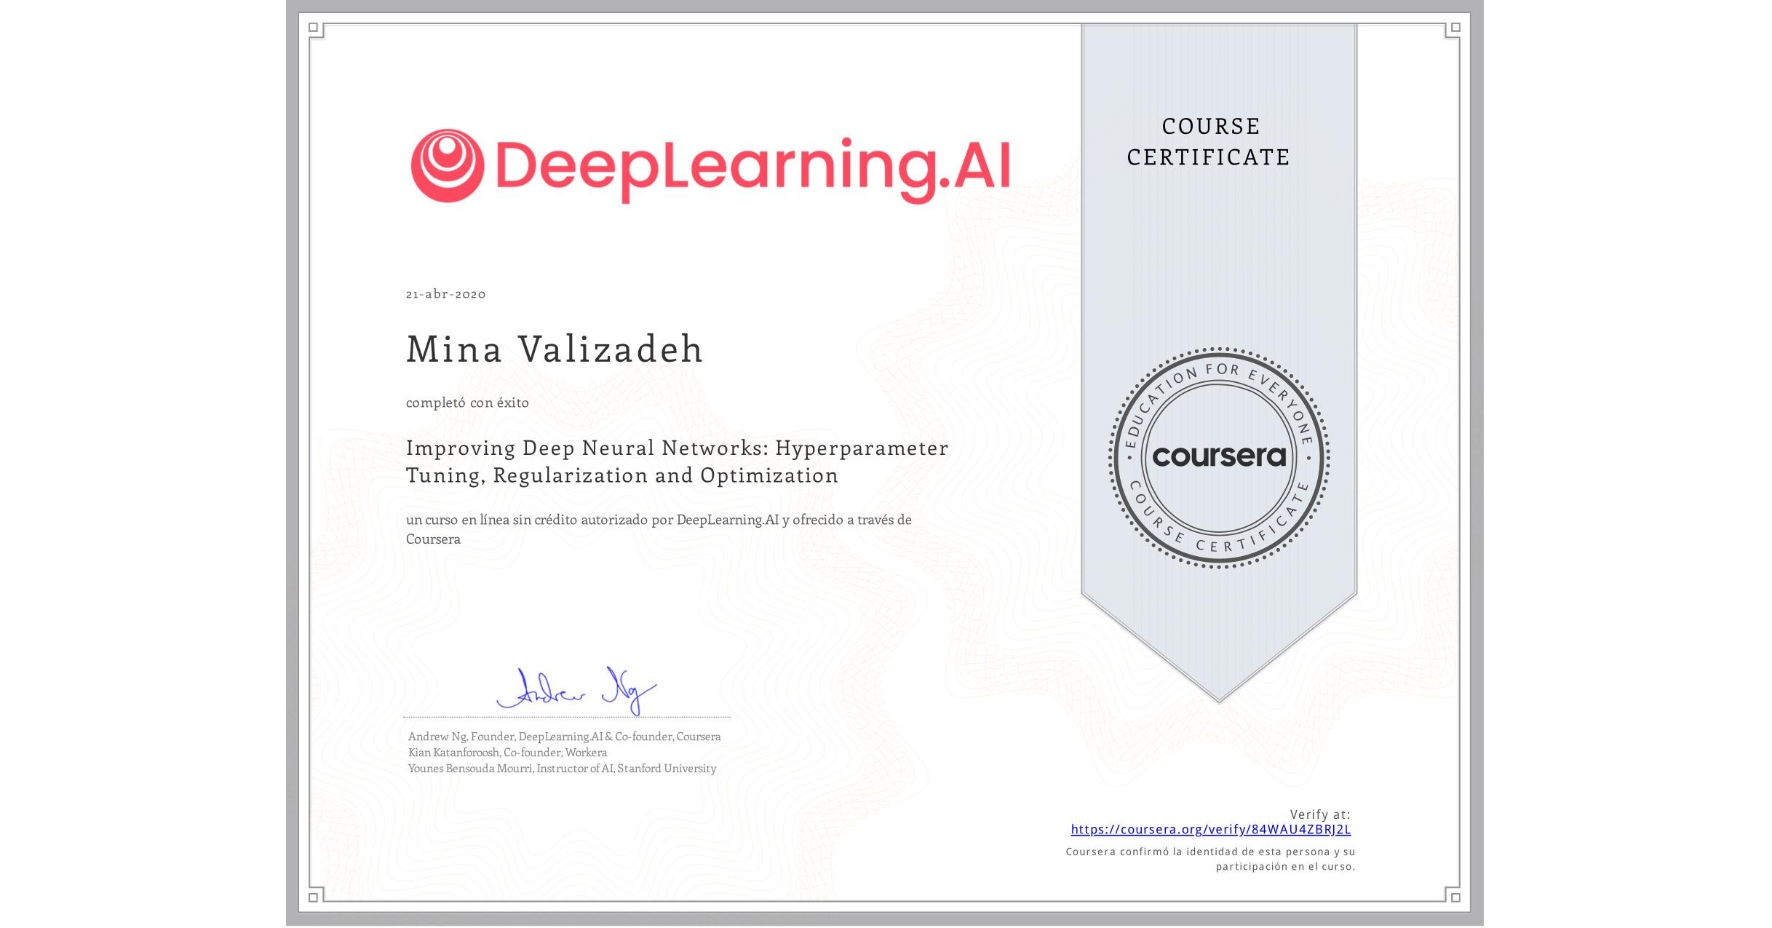 View certificate for Mina Valizadeh, Improving Deep Neural Networks: Hyperparameter Tuning, Regularization and Optimization, an online non-credit course authorized by DeepLearning.AI and offered through Coursera